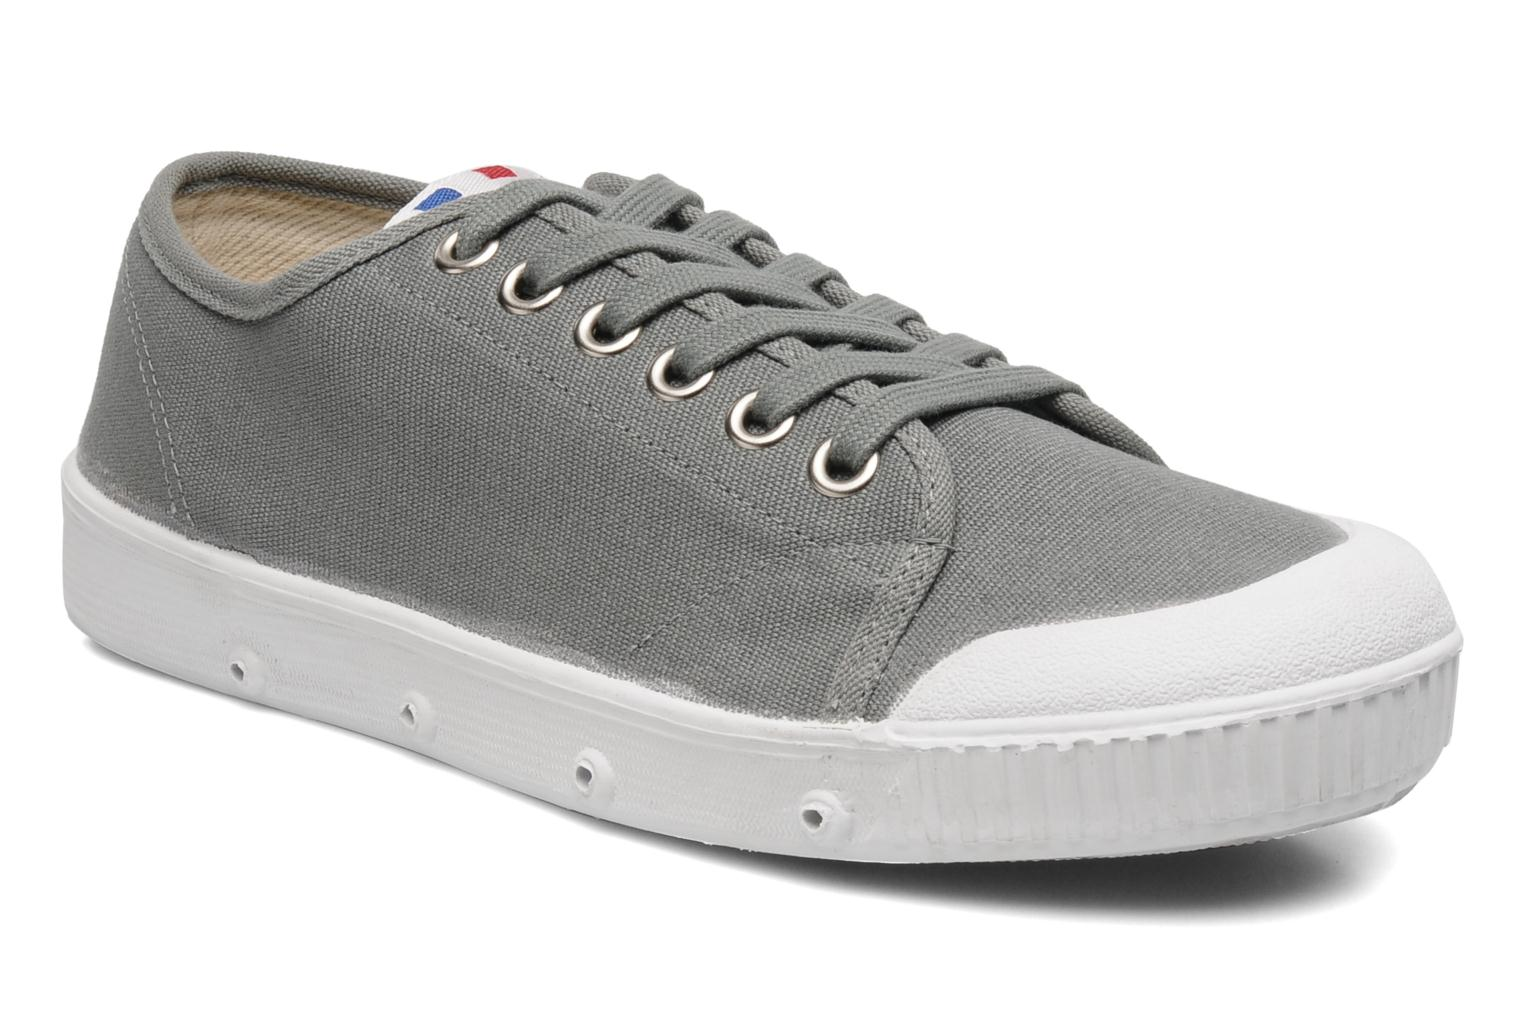 Sneakers G2 lo Cut M by Spring Court